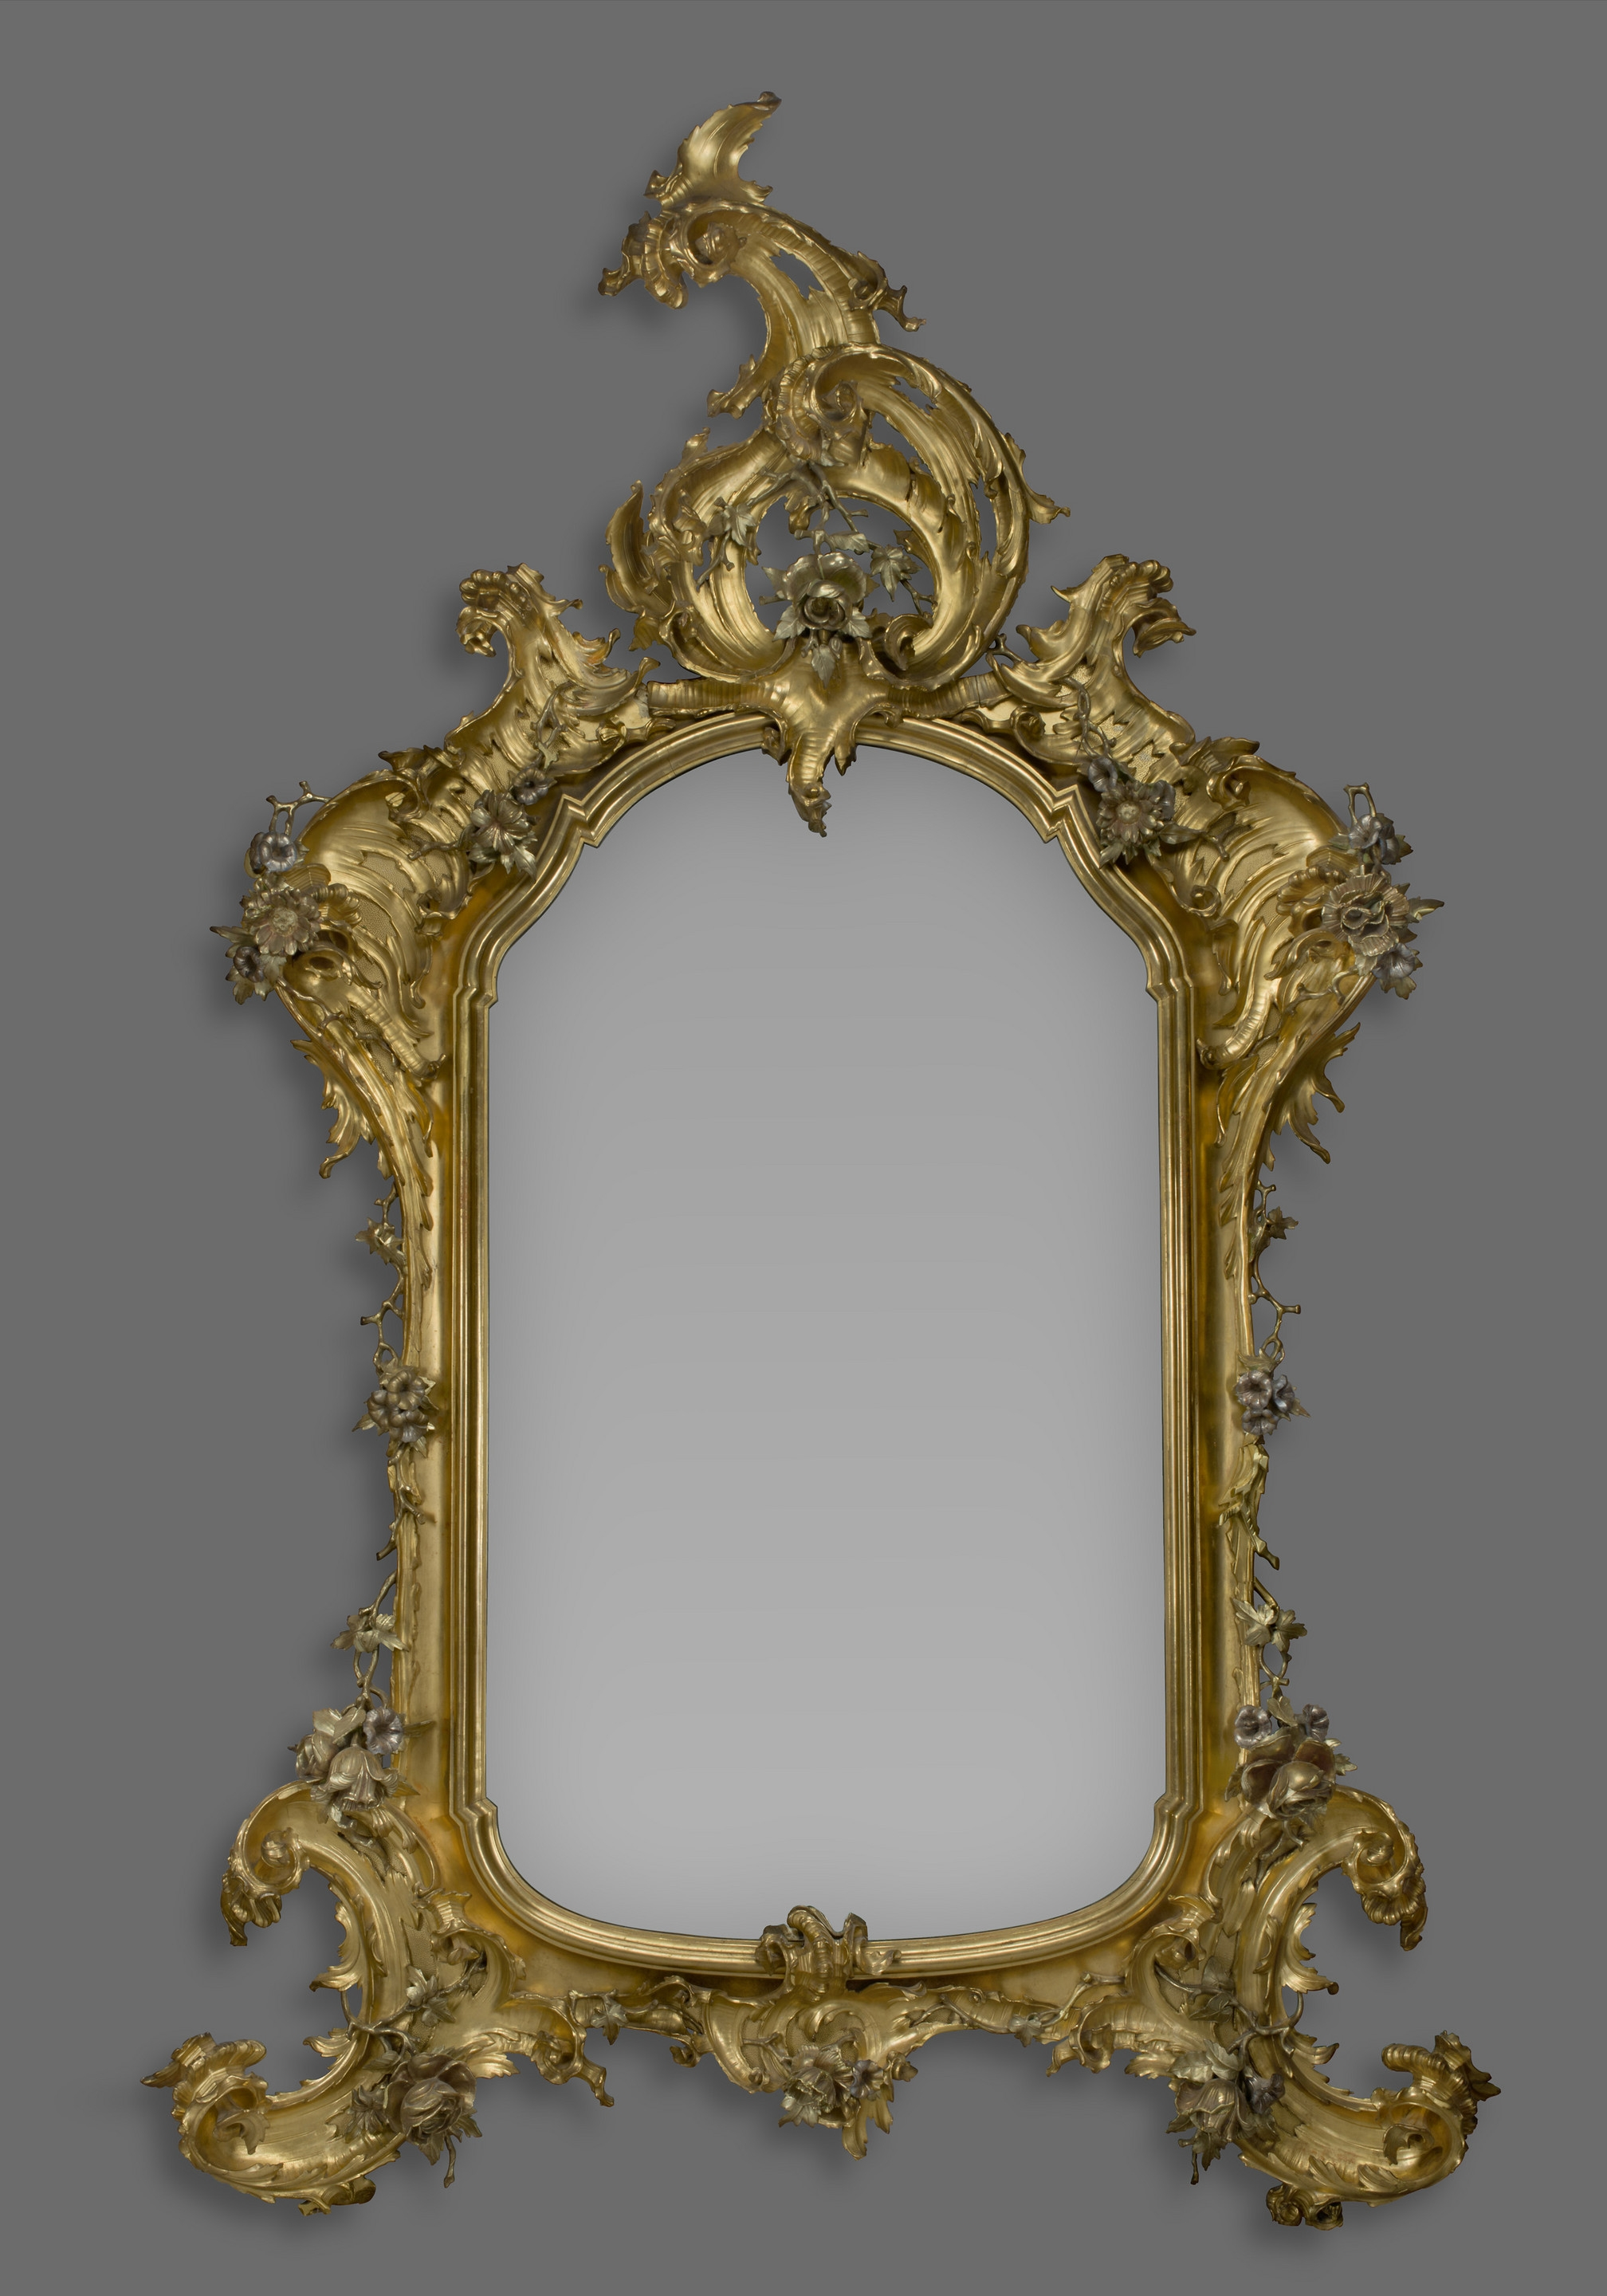 Antique Silver Mirrors The Uks Premier Antiques Portal Online Intended For Old Fashioned Mirrors For Sale (View 15 of 15)